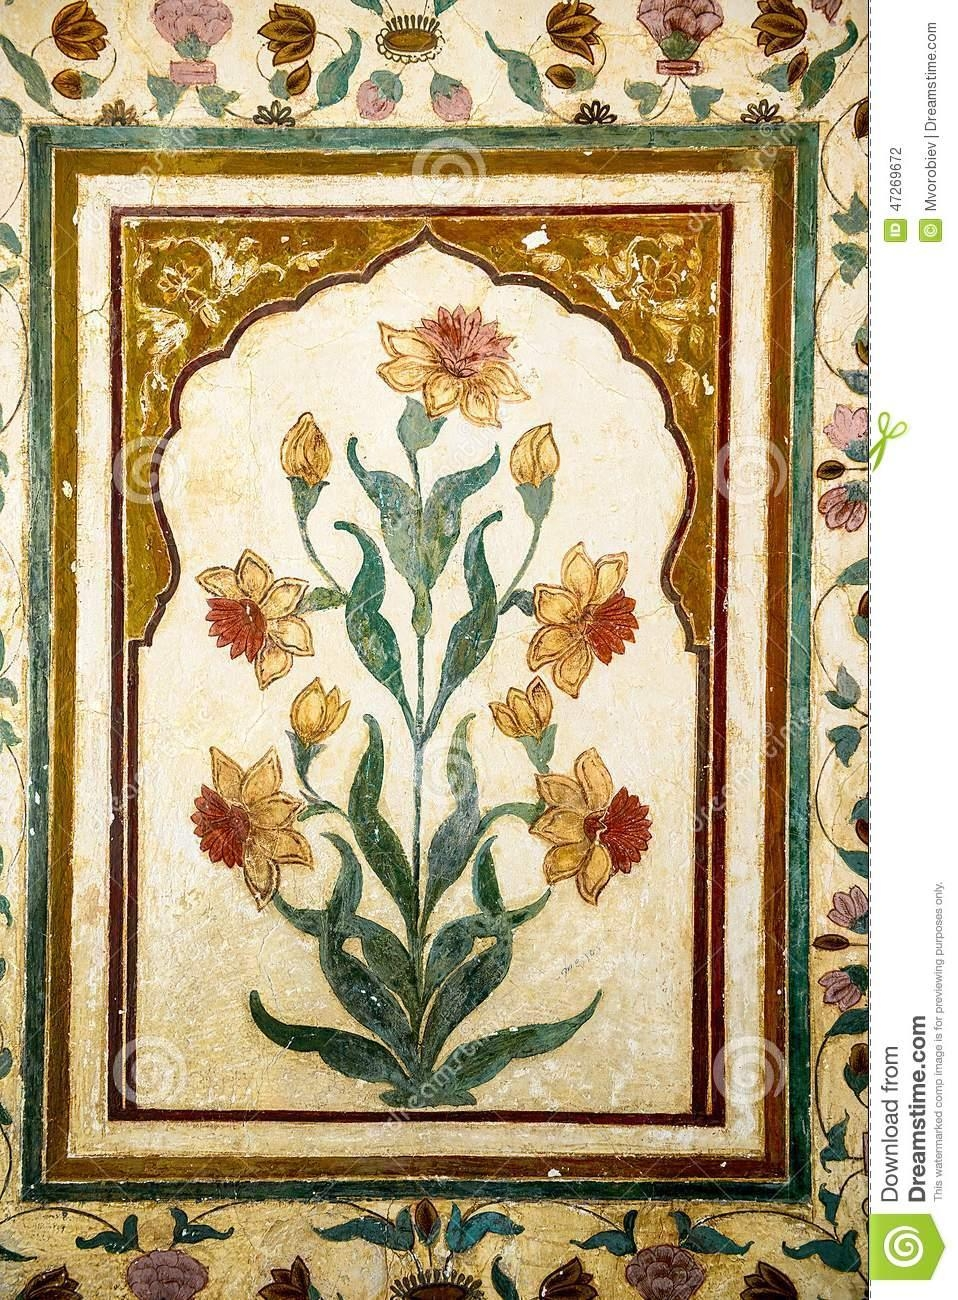 Decoration Of Precious Stones, Taj Mahal Walls Stock Photo – Image With Taj Mahal Wall Art (Image 3 of 20)